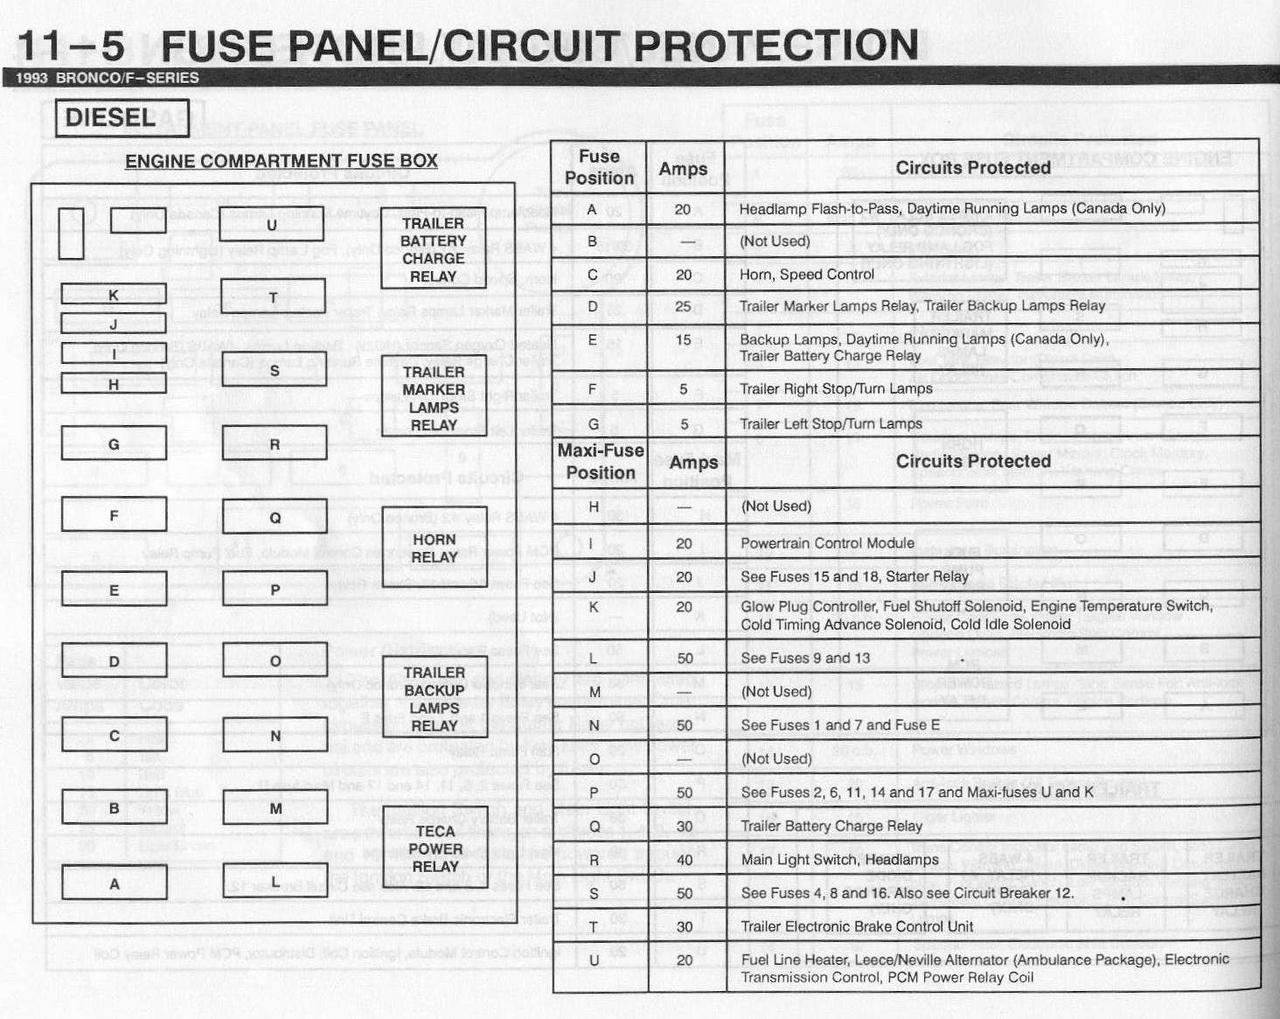 2001 ford expedition fuse box diagram SqNrCOW 93 f350 fuse box diagram wiring diagram data